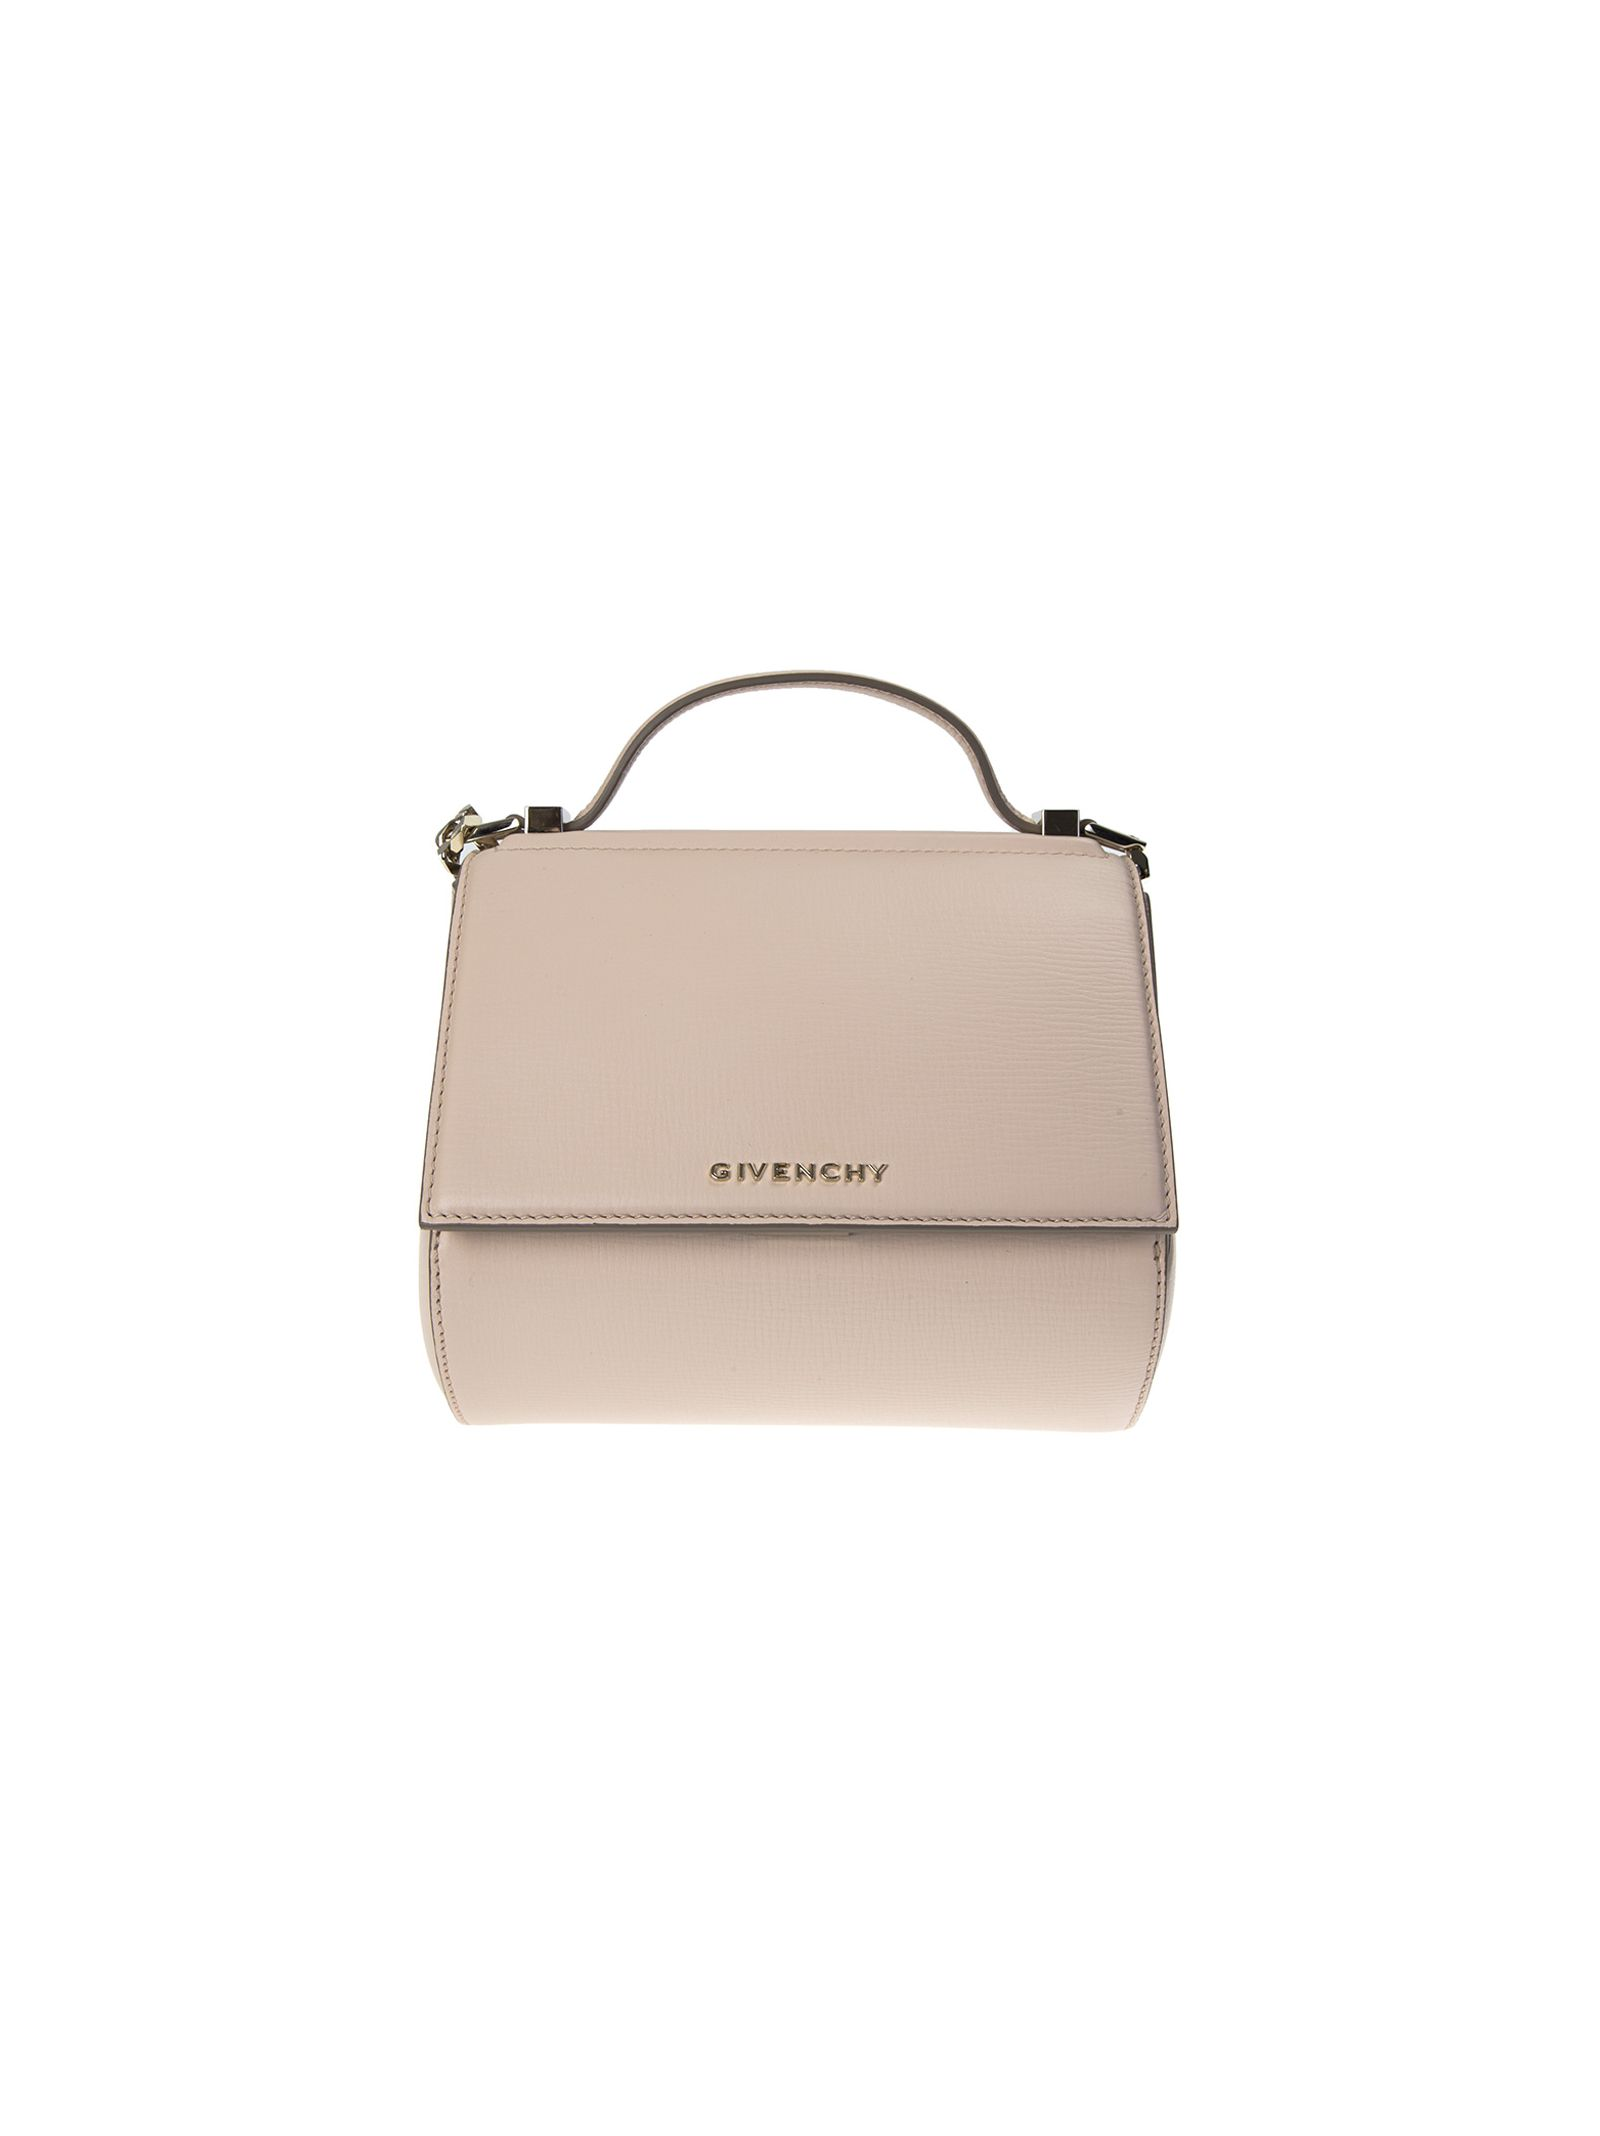 givenchy female pandora box chain pink leather shoulder bag